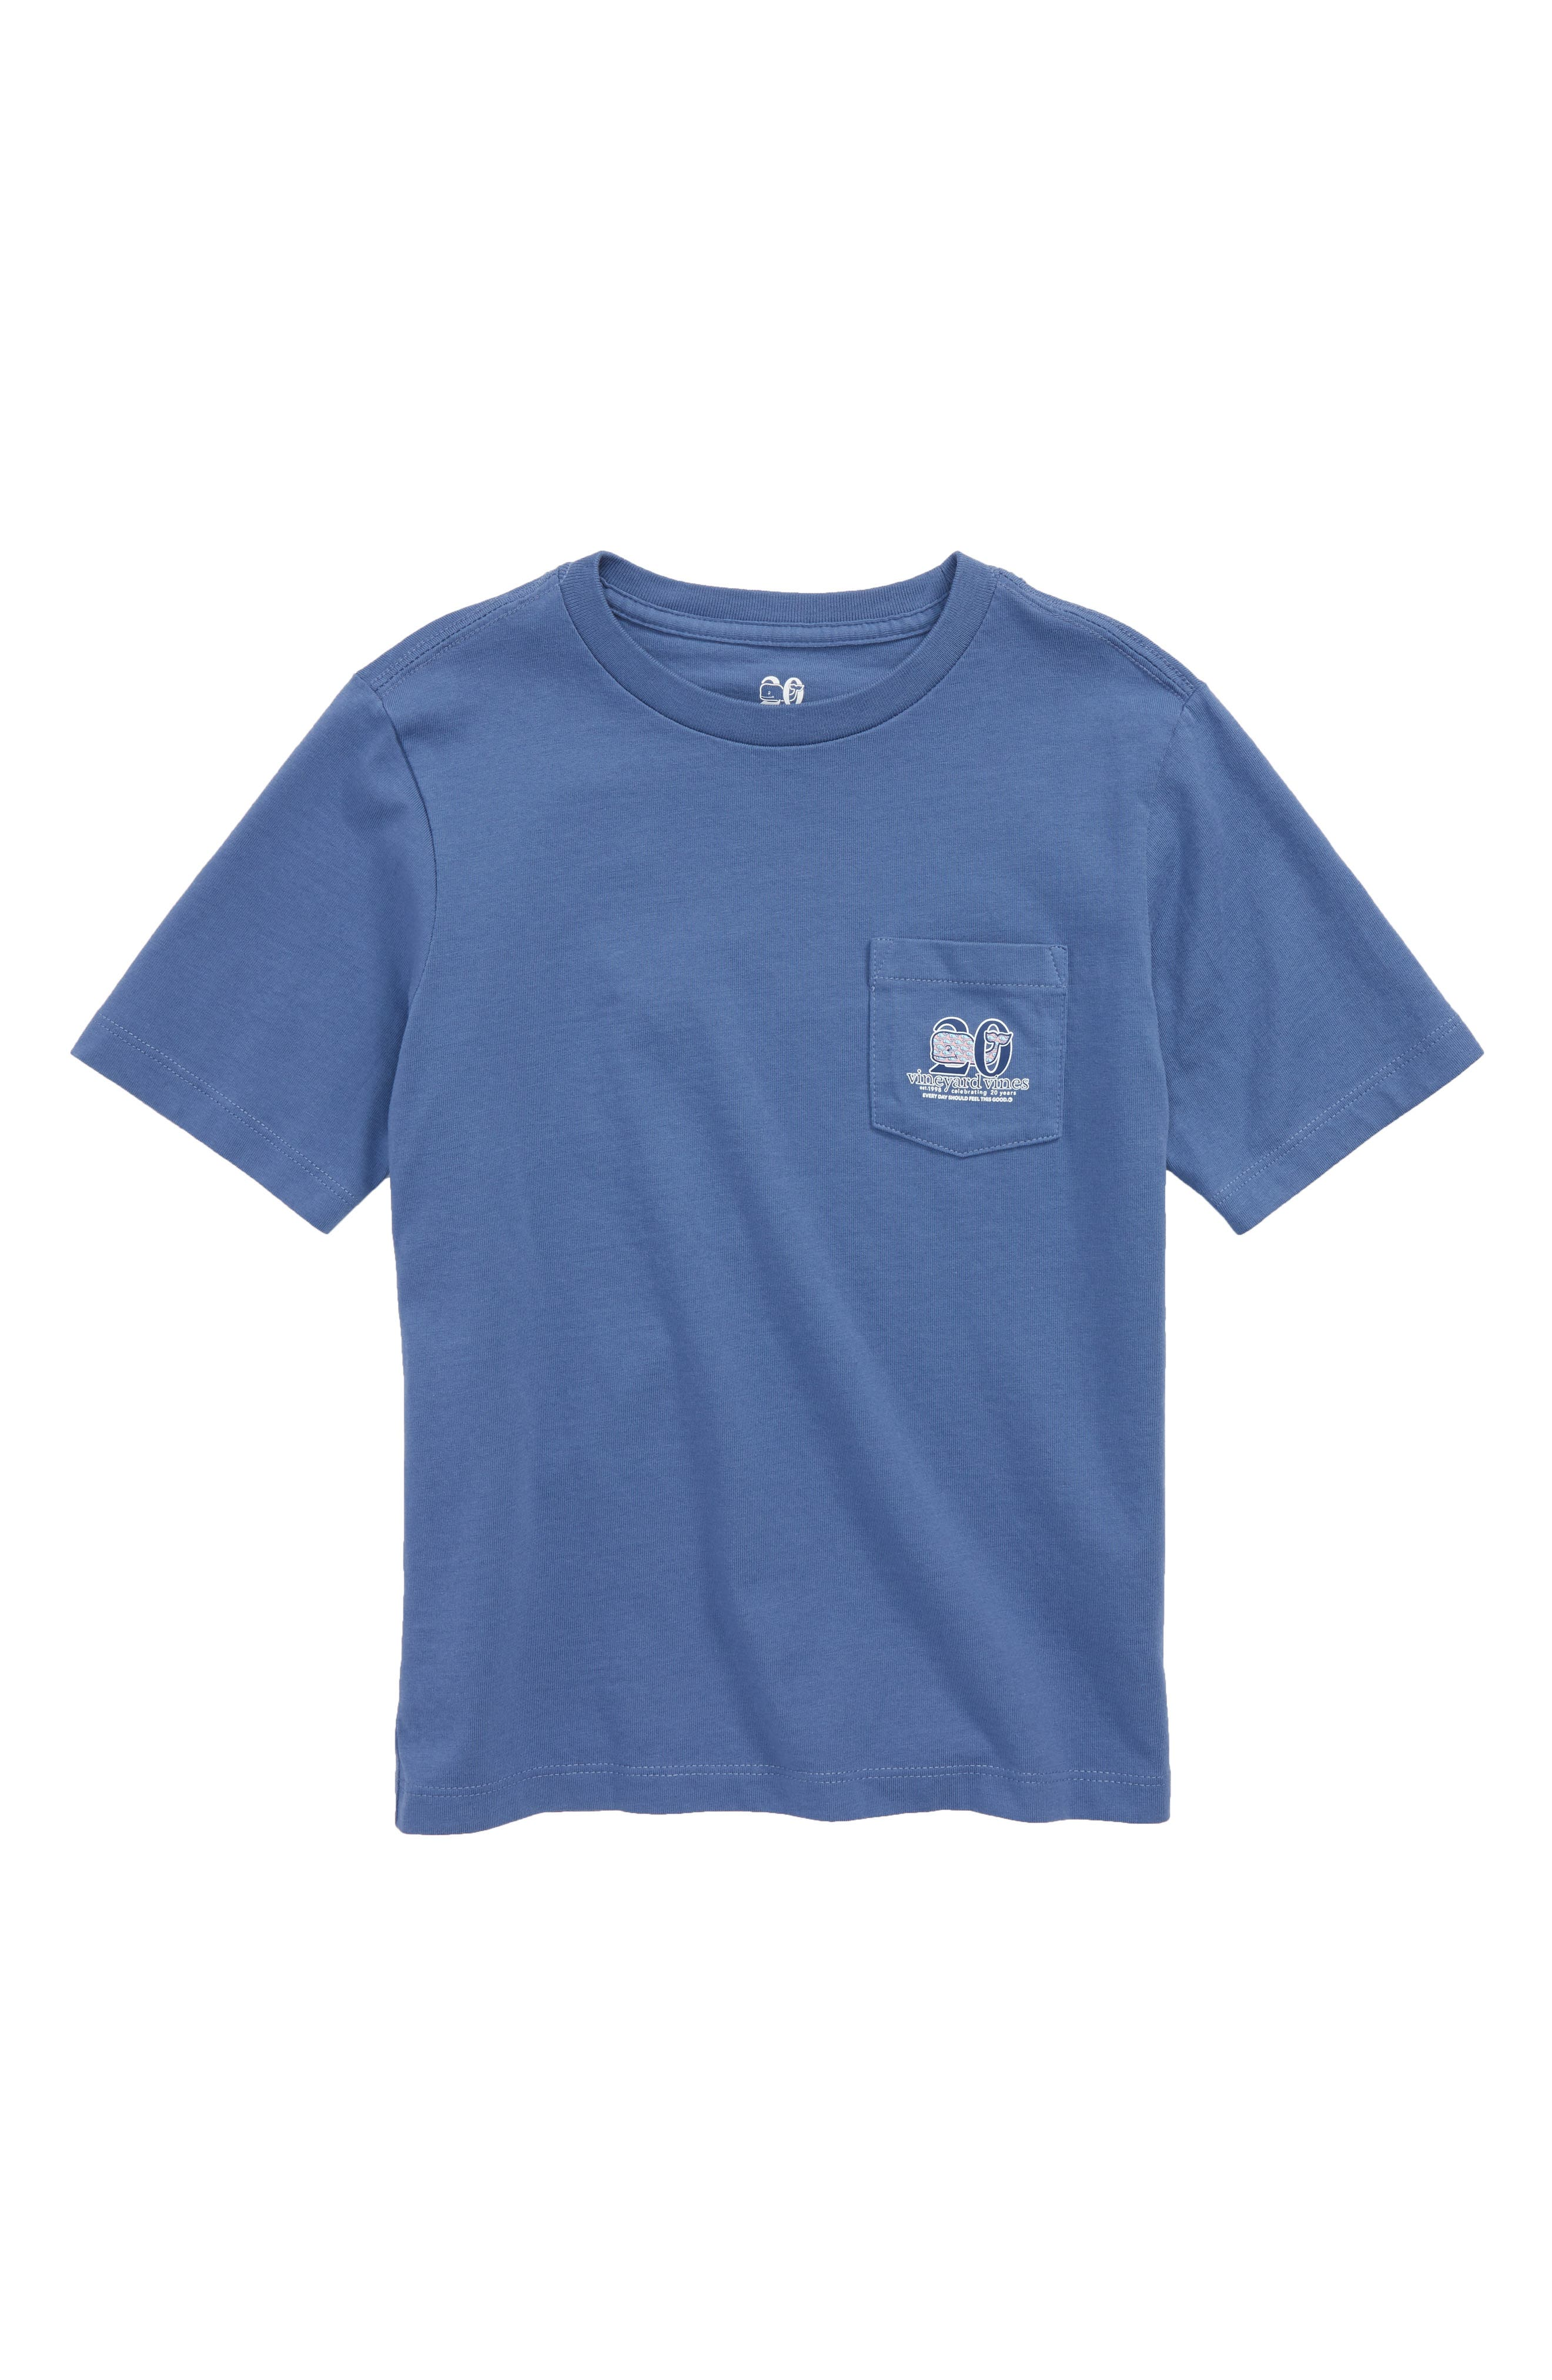 Patchwork Whale Pocket T-Shirt,                             Main thumbnail 1, color,                             MOONSHINE